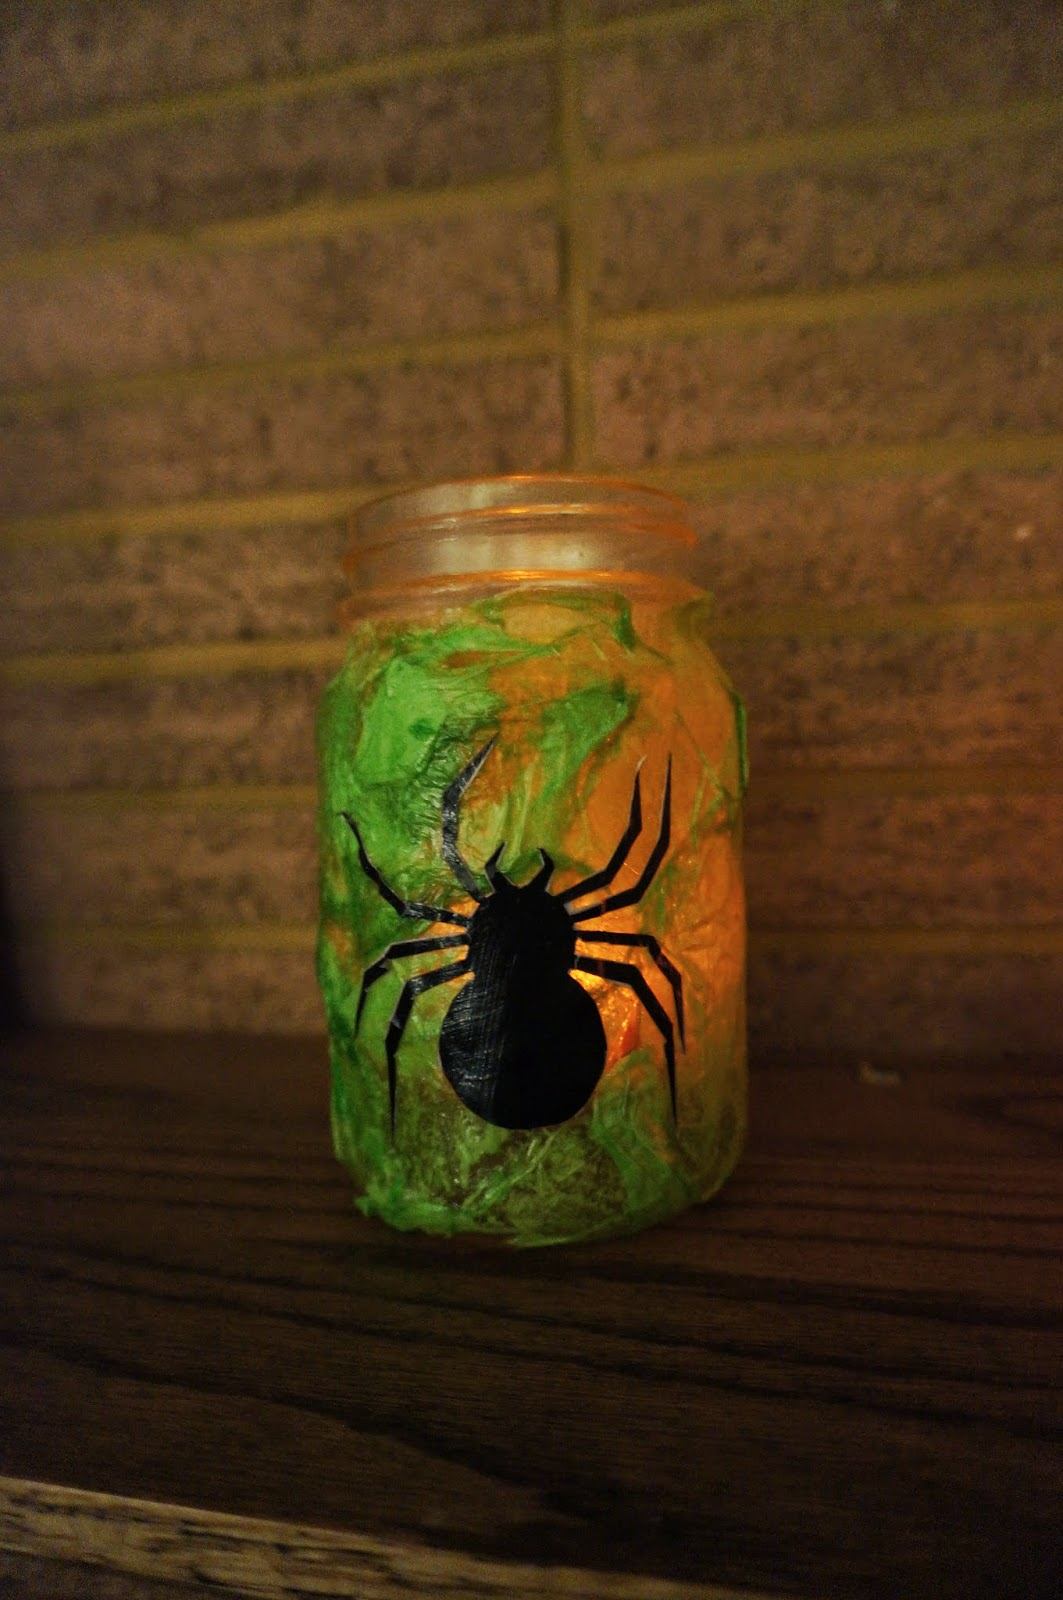 For a simple Halloween decoration, try making these candle jars with your kids. They're easy and spooky and the possibilities are endless.